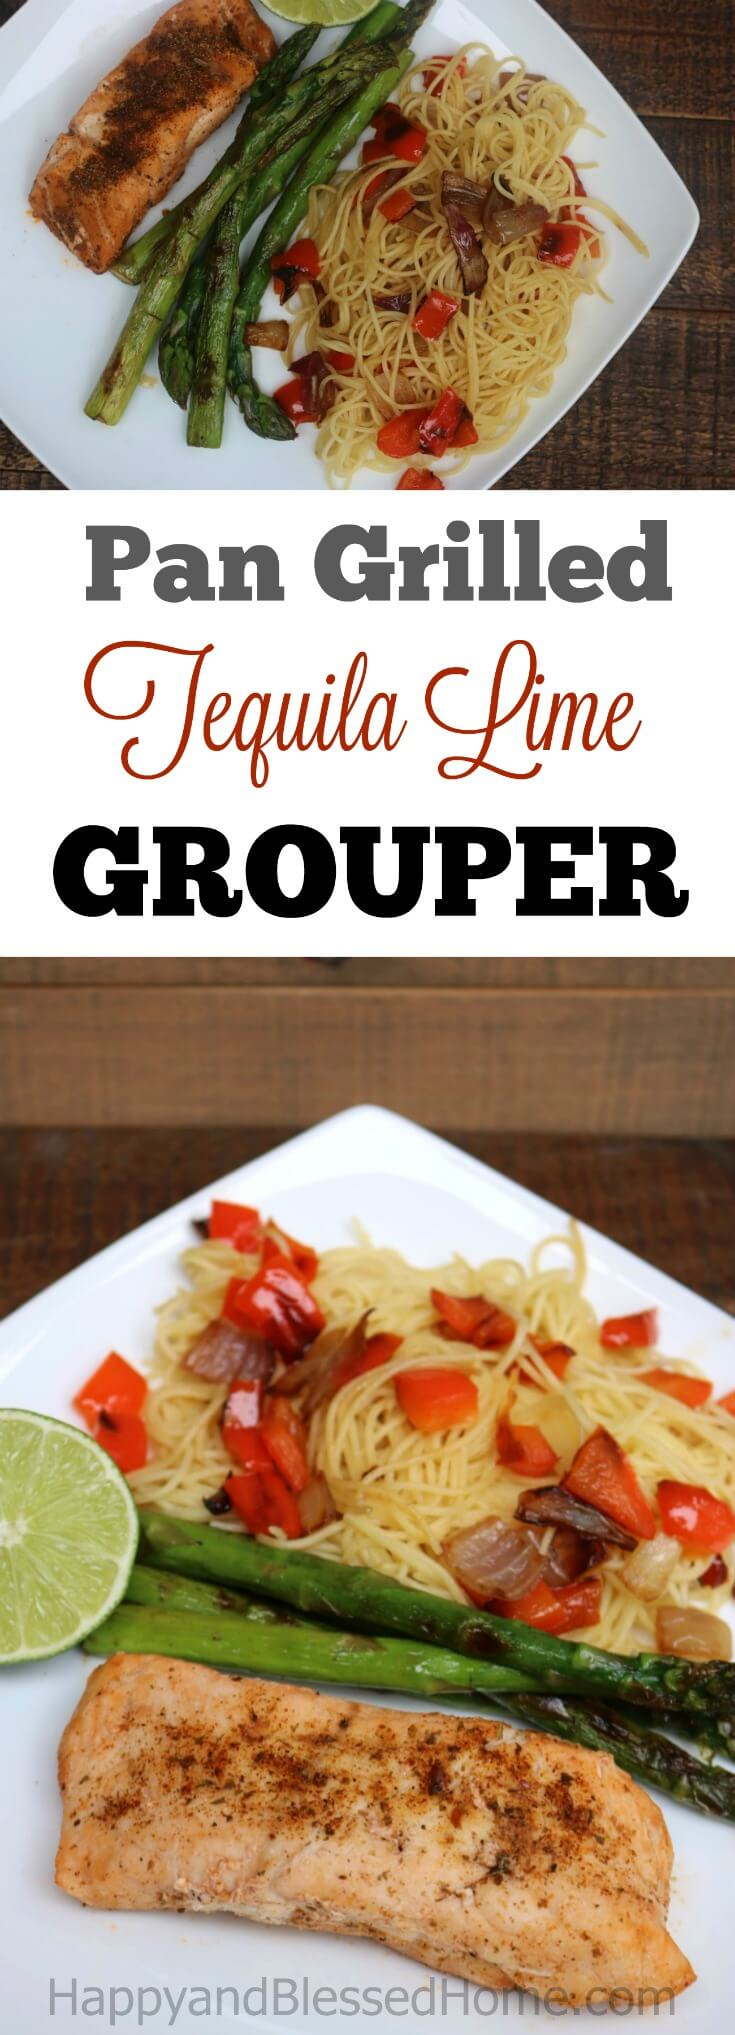 Tequila lime grouper recipe happy and blessed home for Easy tequila recipes